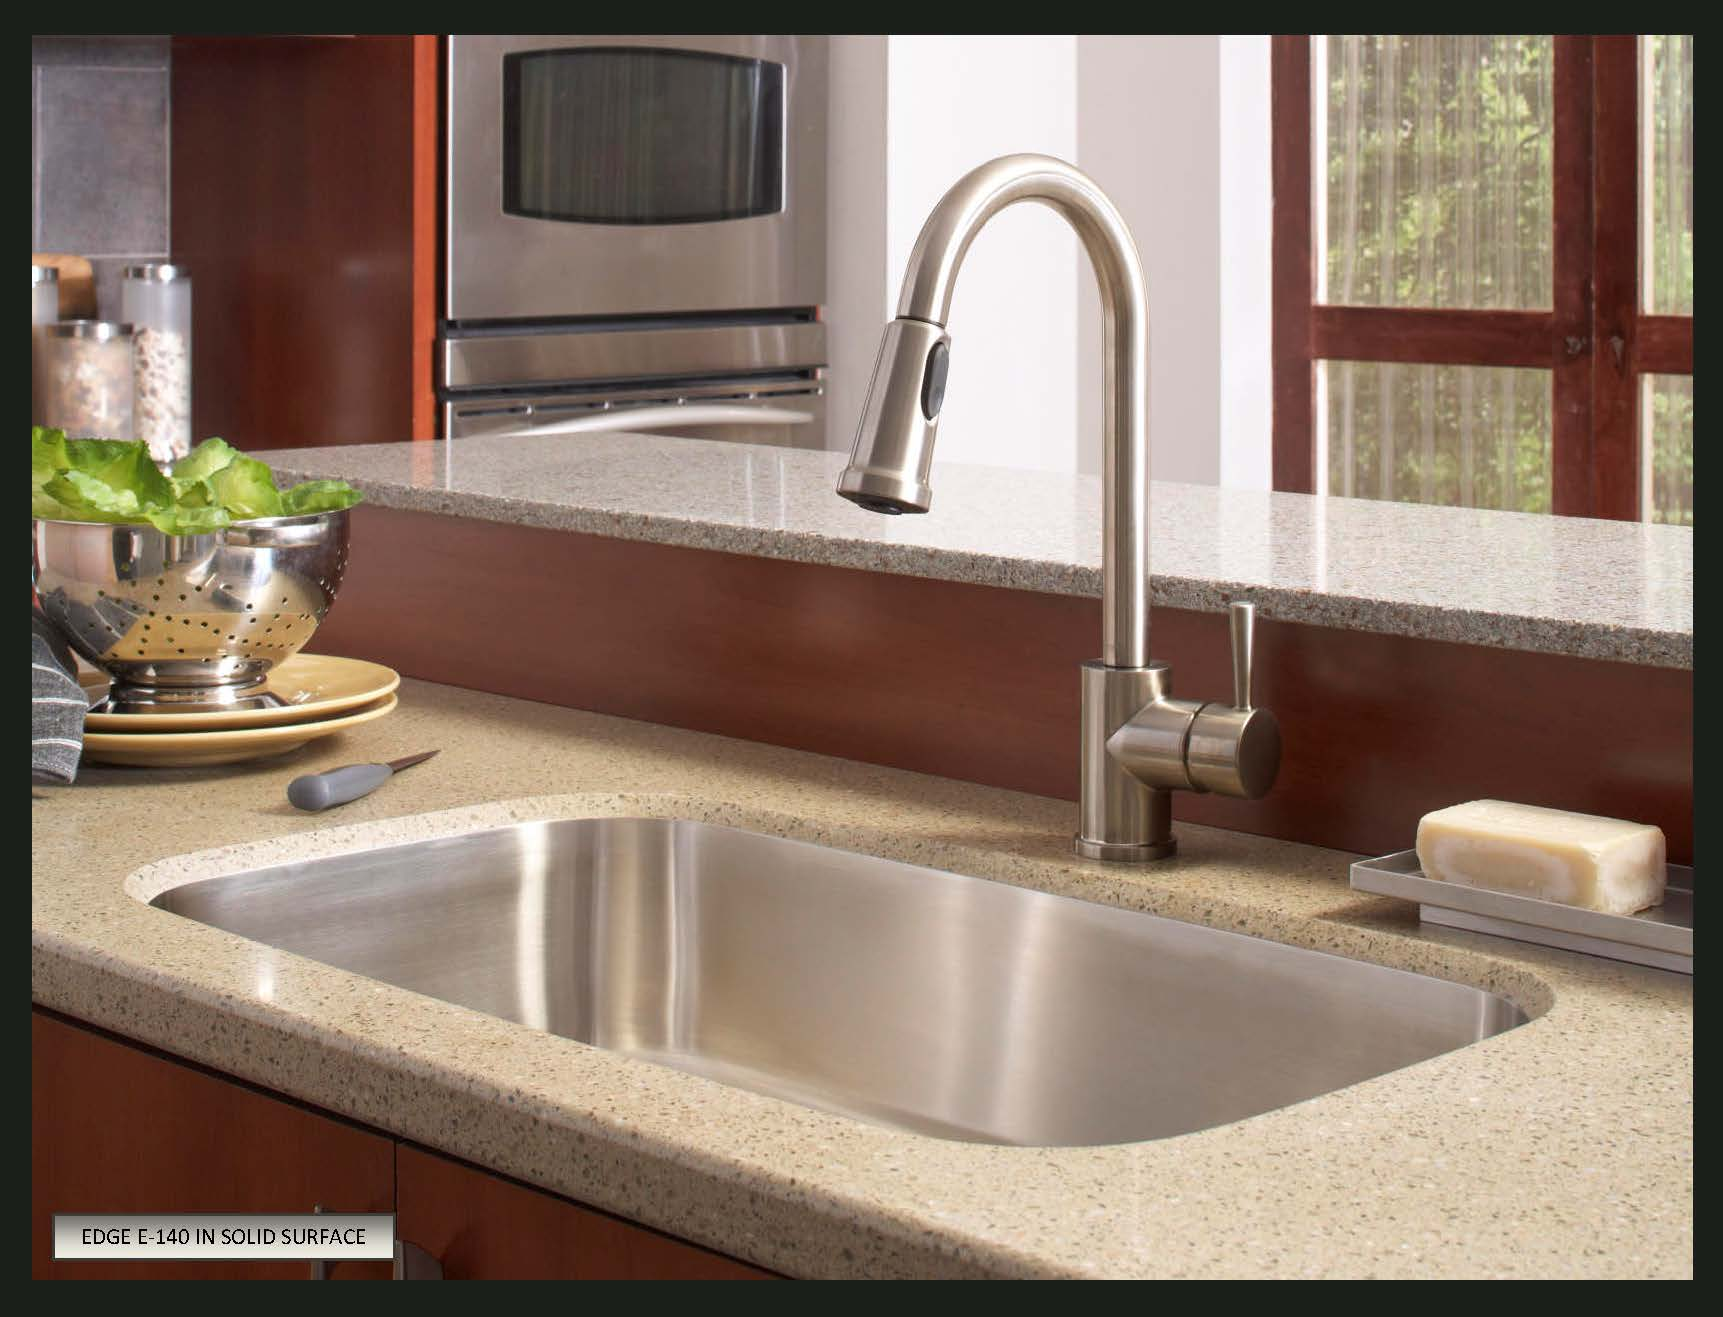 Good Quartz Undermount Kitchen Sinks Part - 11: Karran Undermount Stainless Steel Sinks